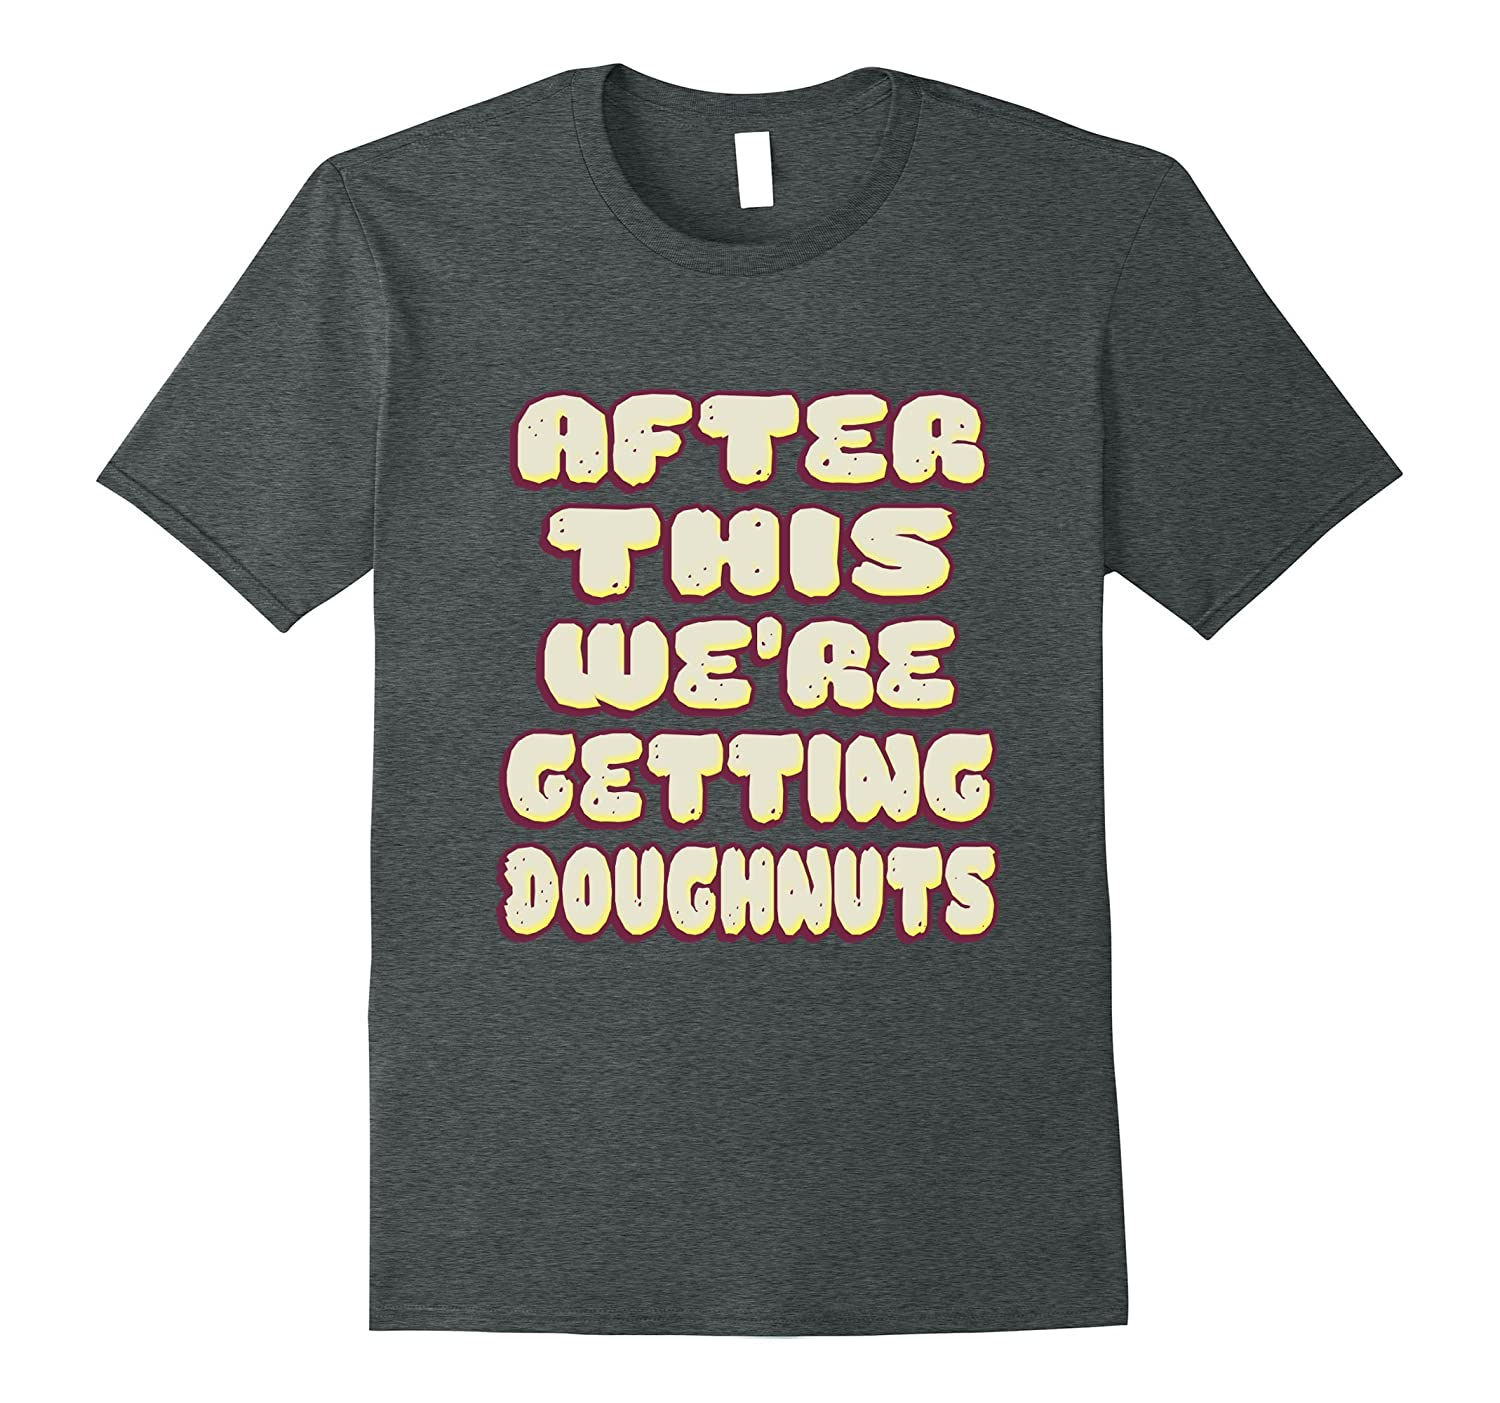 After this were getting doughnuts shirt-Vaci